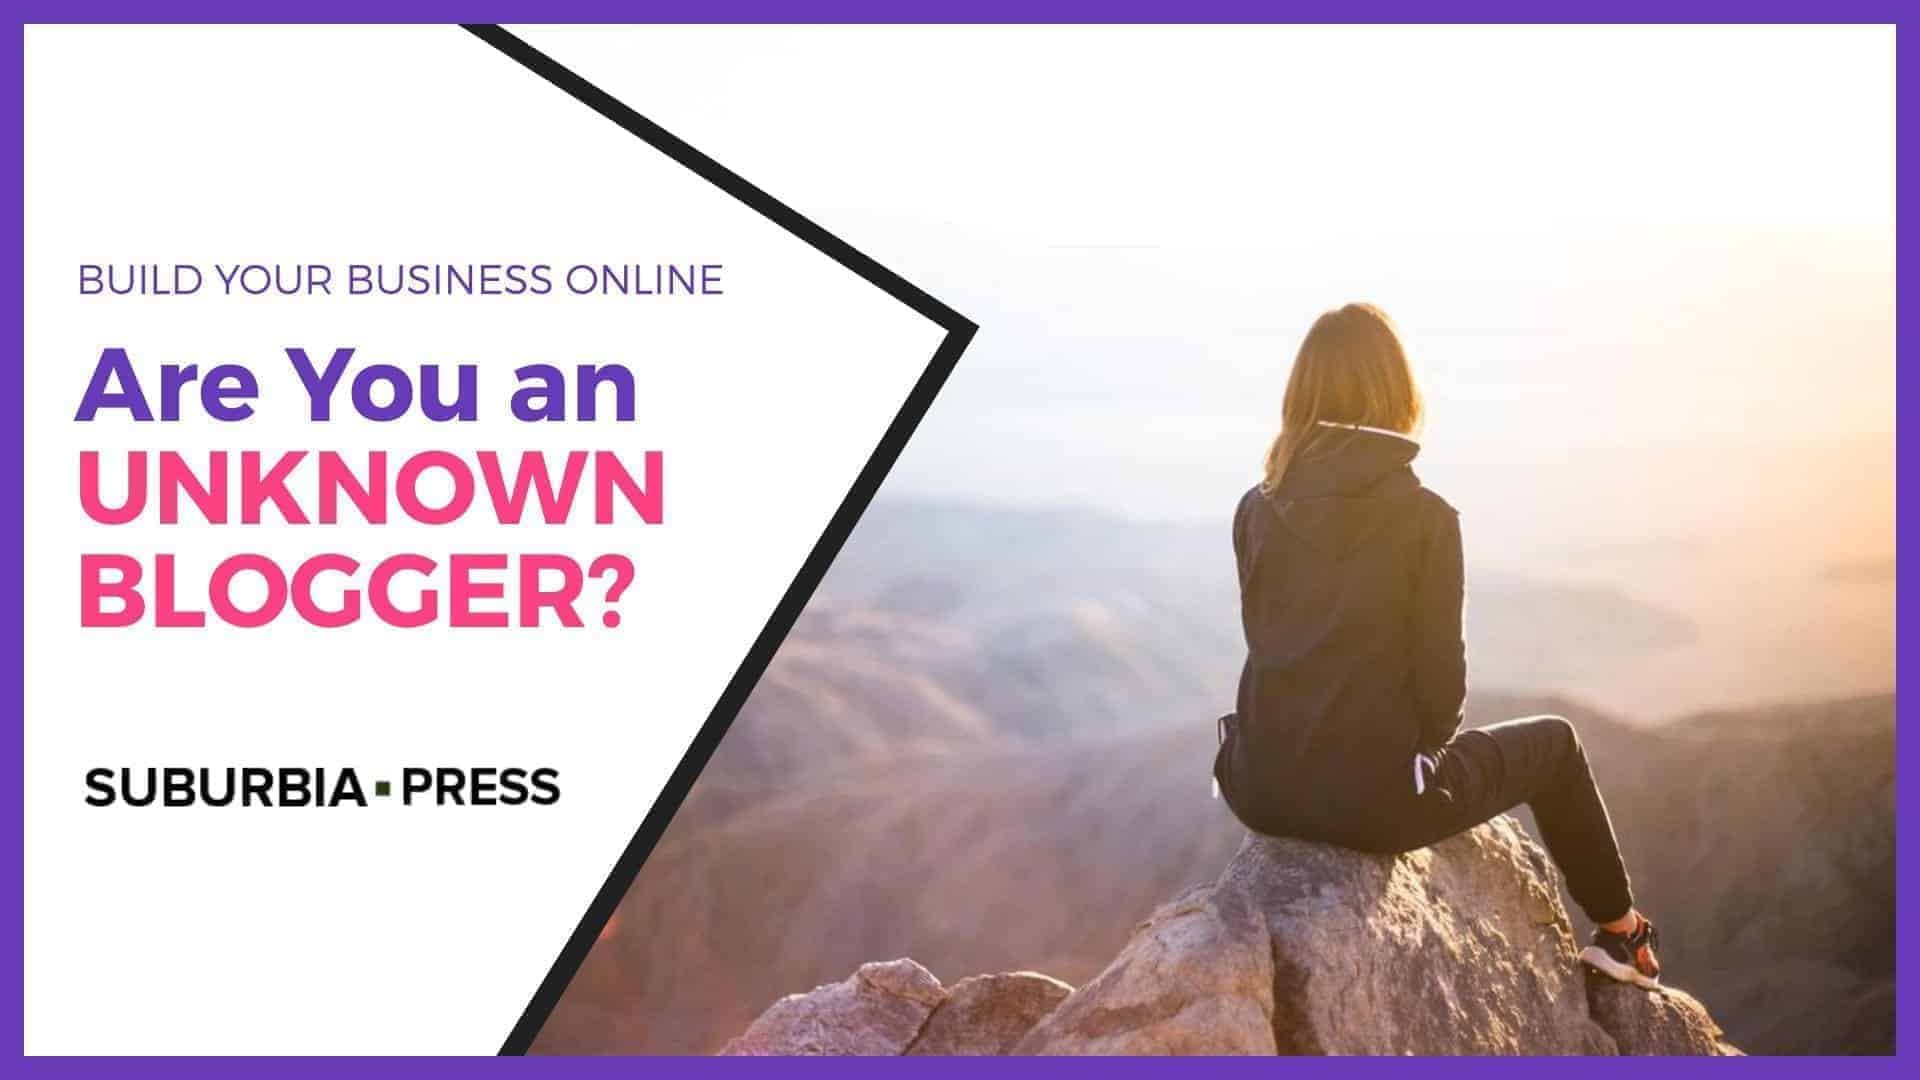 The Top 5 Reasons You're an Unknown Blogger